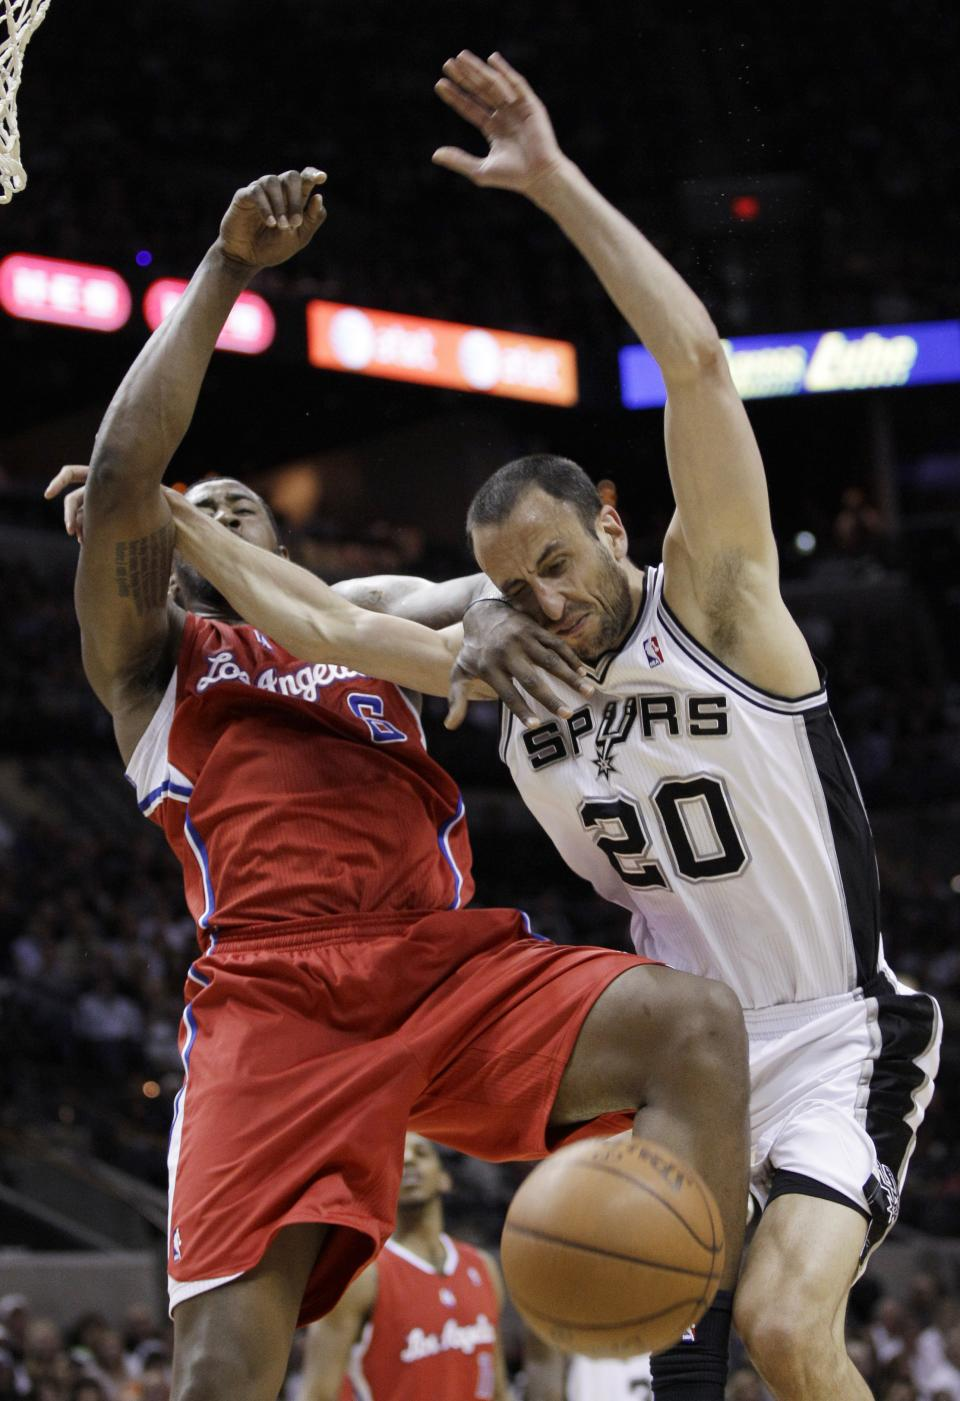 San Antonio Spurs' Manu Ginobili, right, of Argentina, loses the ball as Los Angeles Clippers' DeAndre Jordan defends during the second quarter of Game 1 of an NBA basketball Western Conference semifinal playoff series, Tuesday, May 15, 2012, in San Antonio. (AP Photo/Eric Gay)